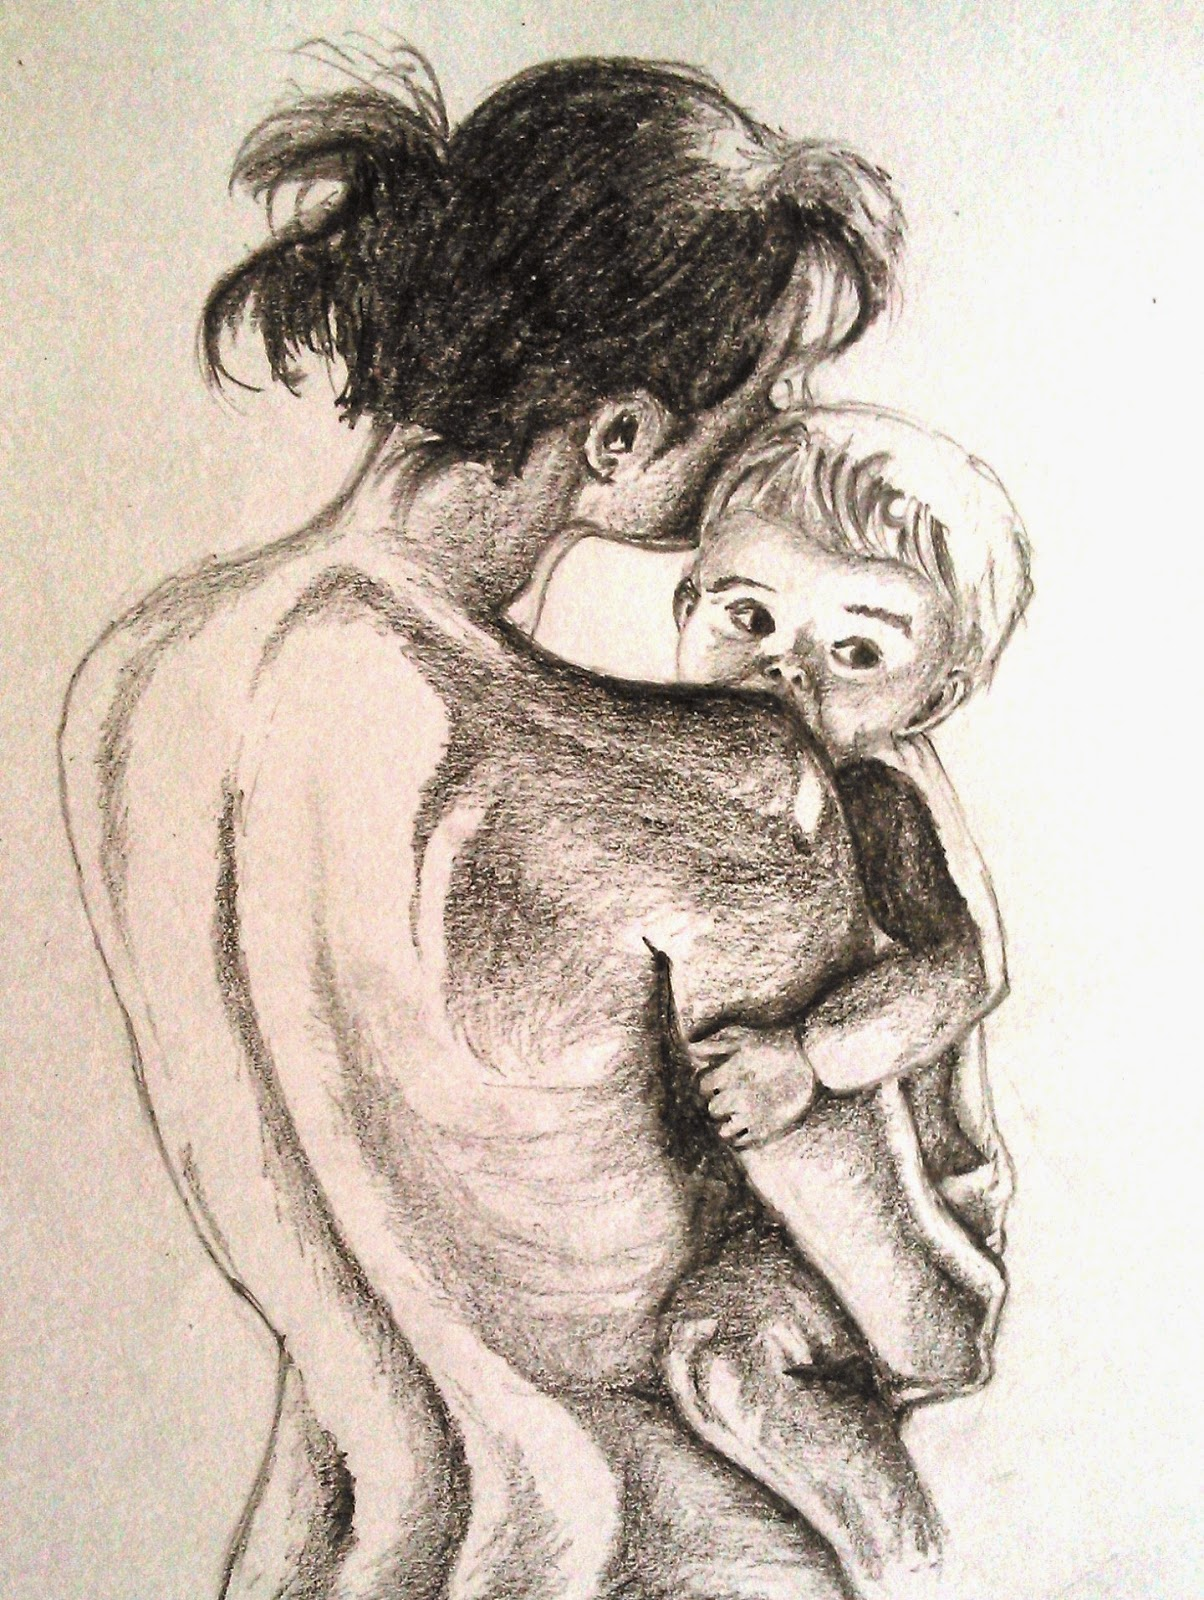 I have tried to show the love between mother and her child through this sketch